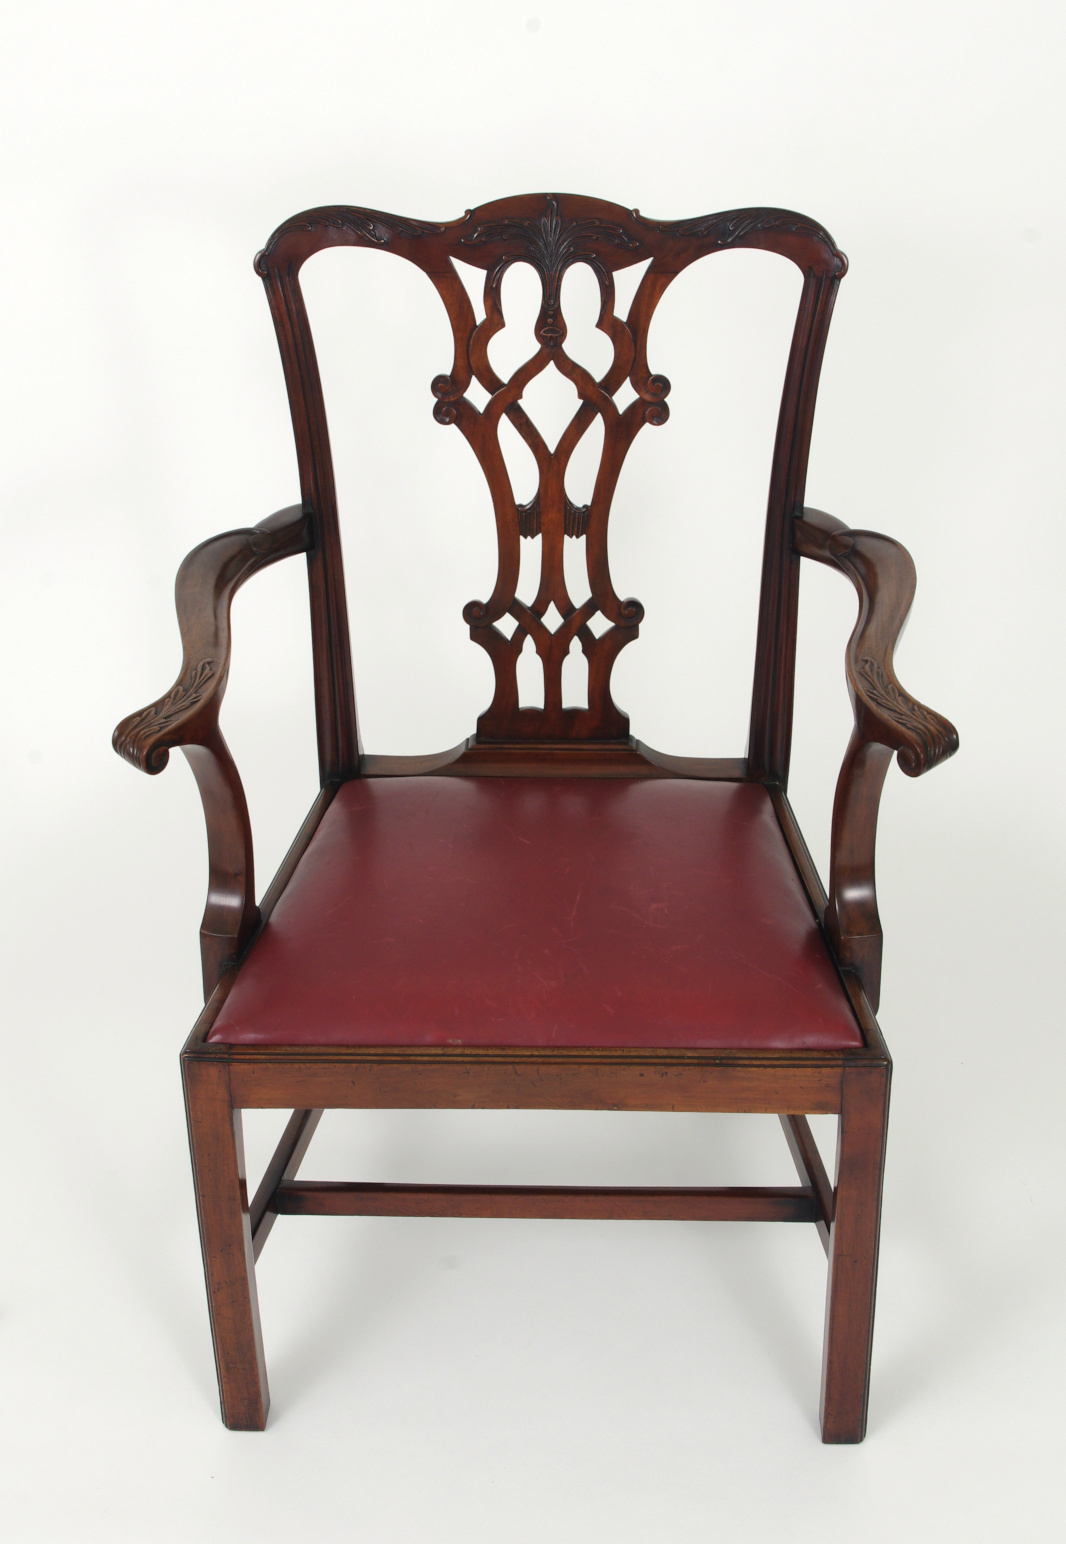 View 6: Set of Eight Chippendale Style Mahogany Dining Chairs (6+2), early 19th c.